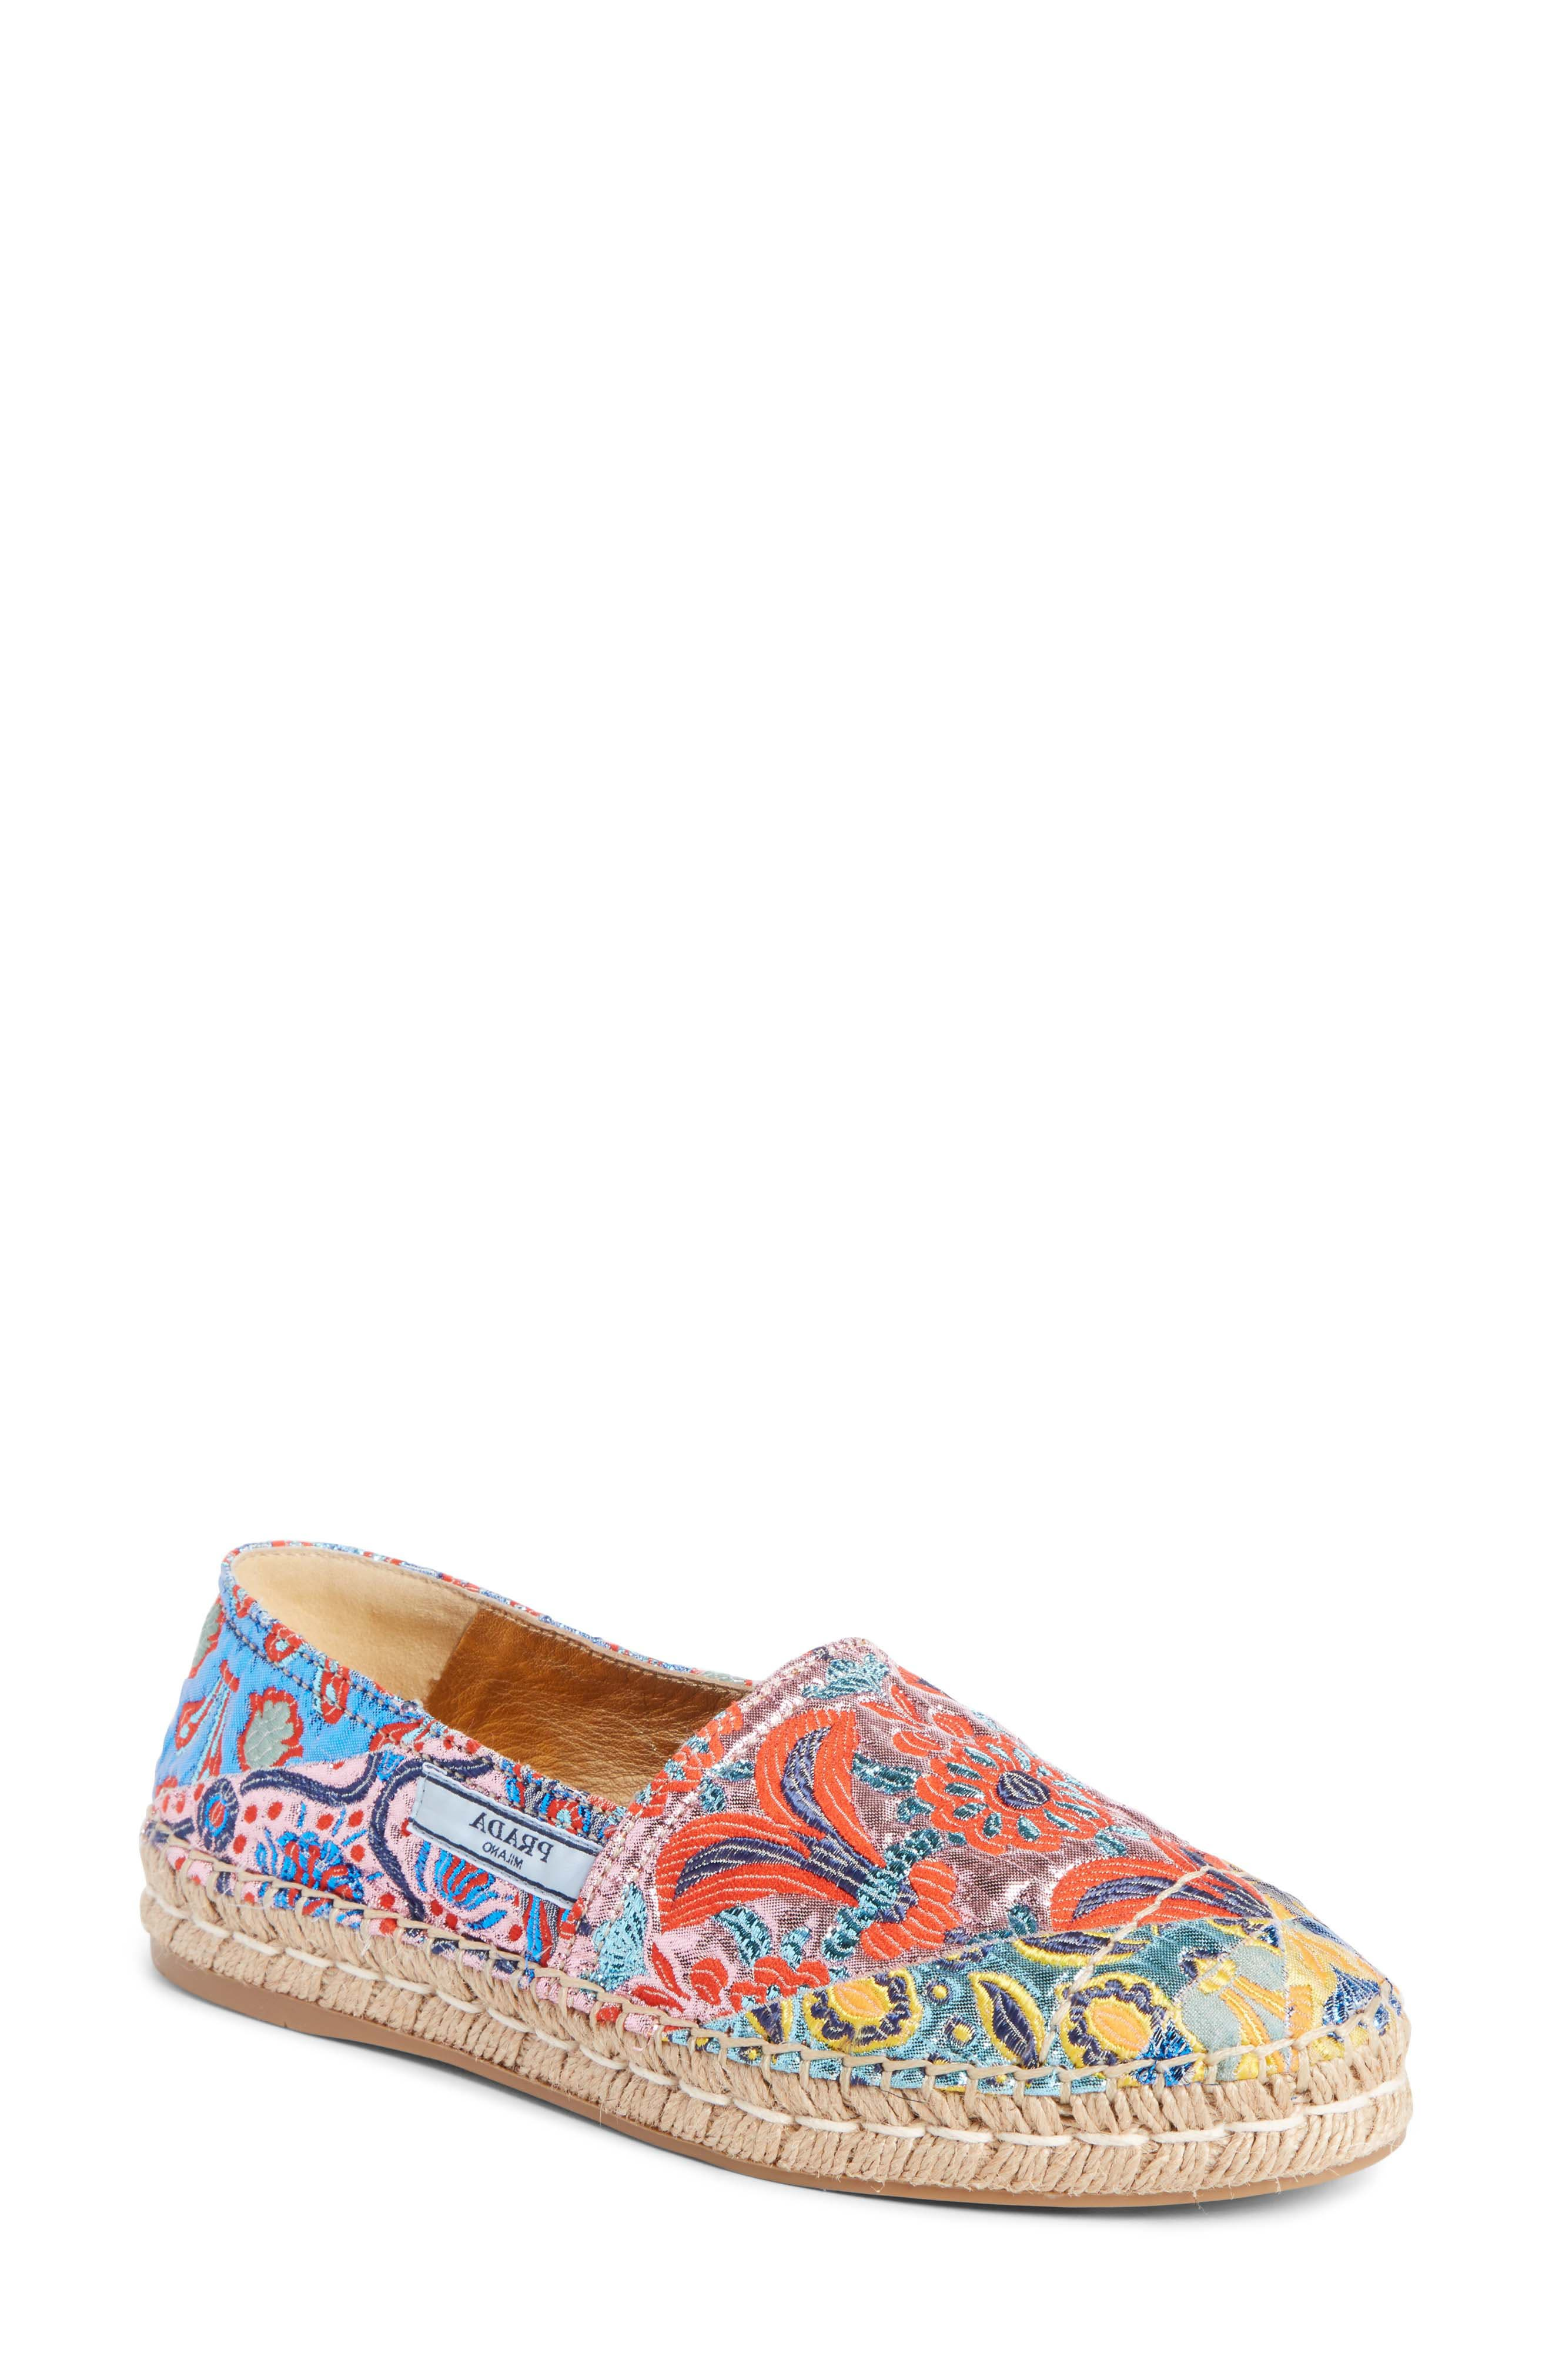 Floral Embroidered Espadrille Flat,                         Main,                         color, 650